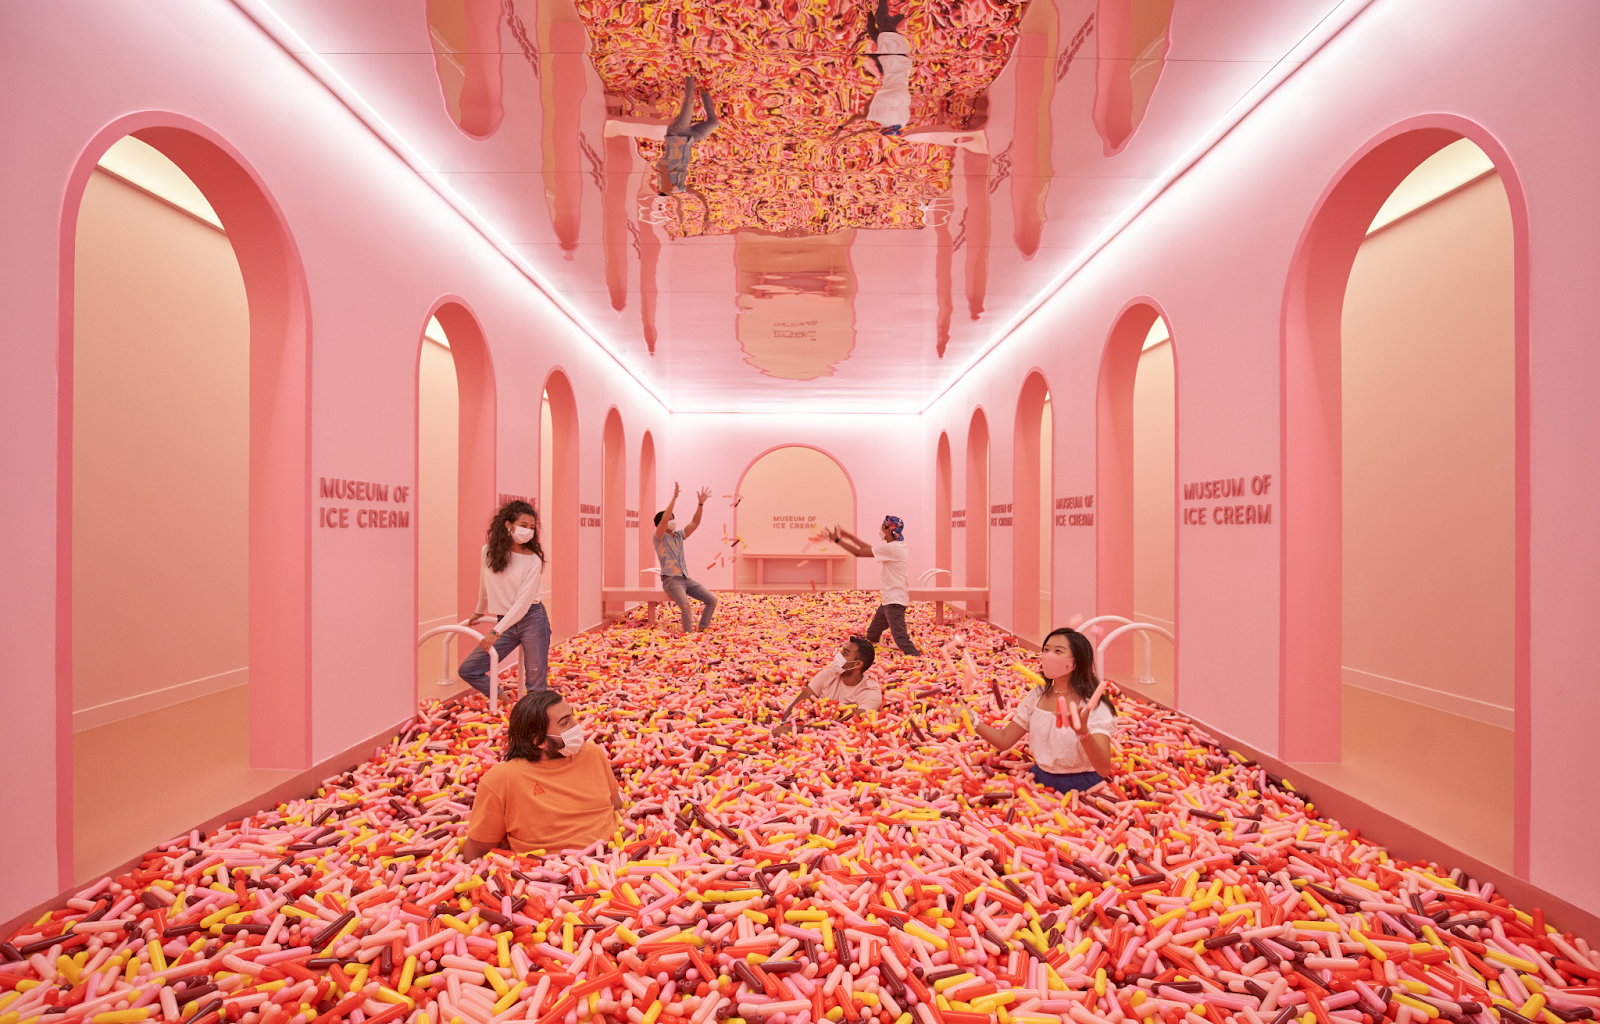 Museum of Ice Cream opens its doors at 100 Loewan Road in Dempsey and welcomes guests to Singapore's latest lifestyle destination - Alvinology